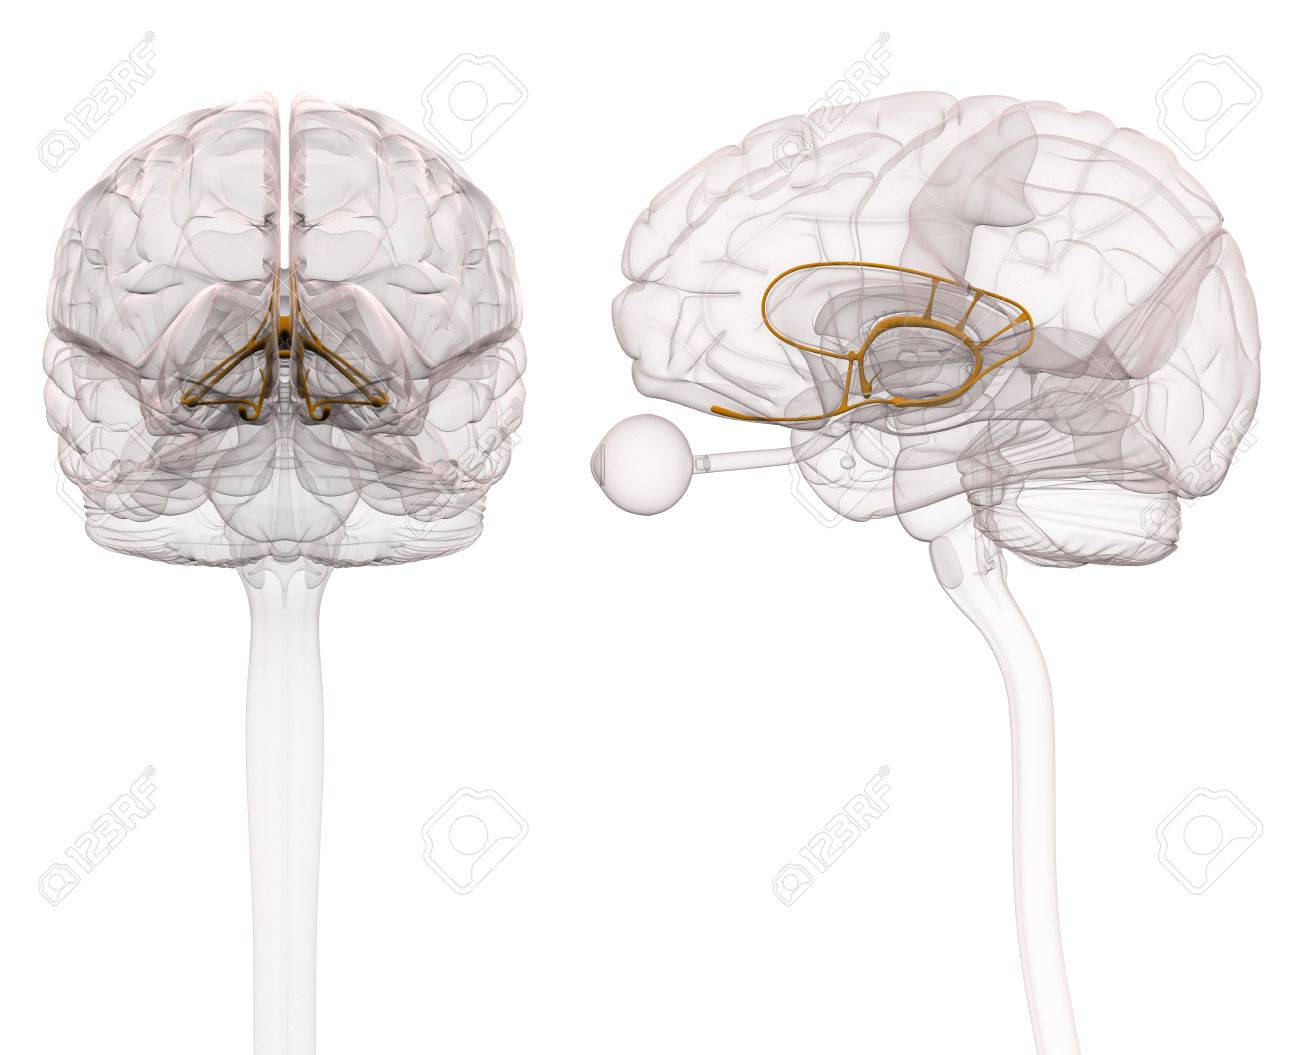 Limbic System Brain Anatomy - 3d Illustration Stock Photo, Picture ...